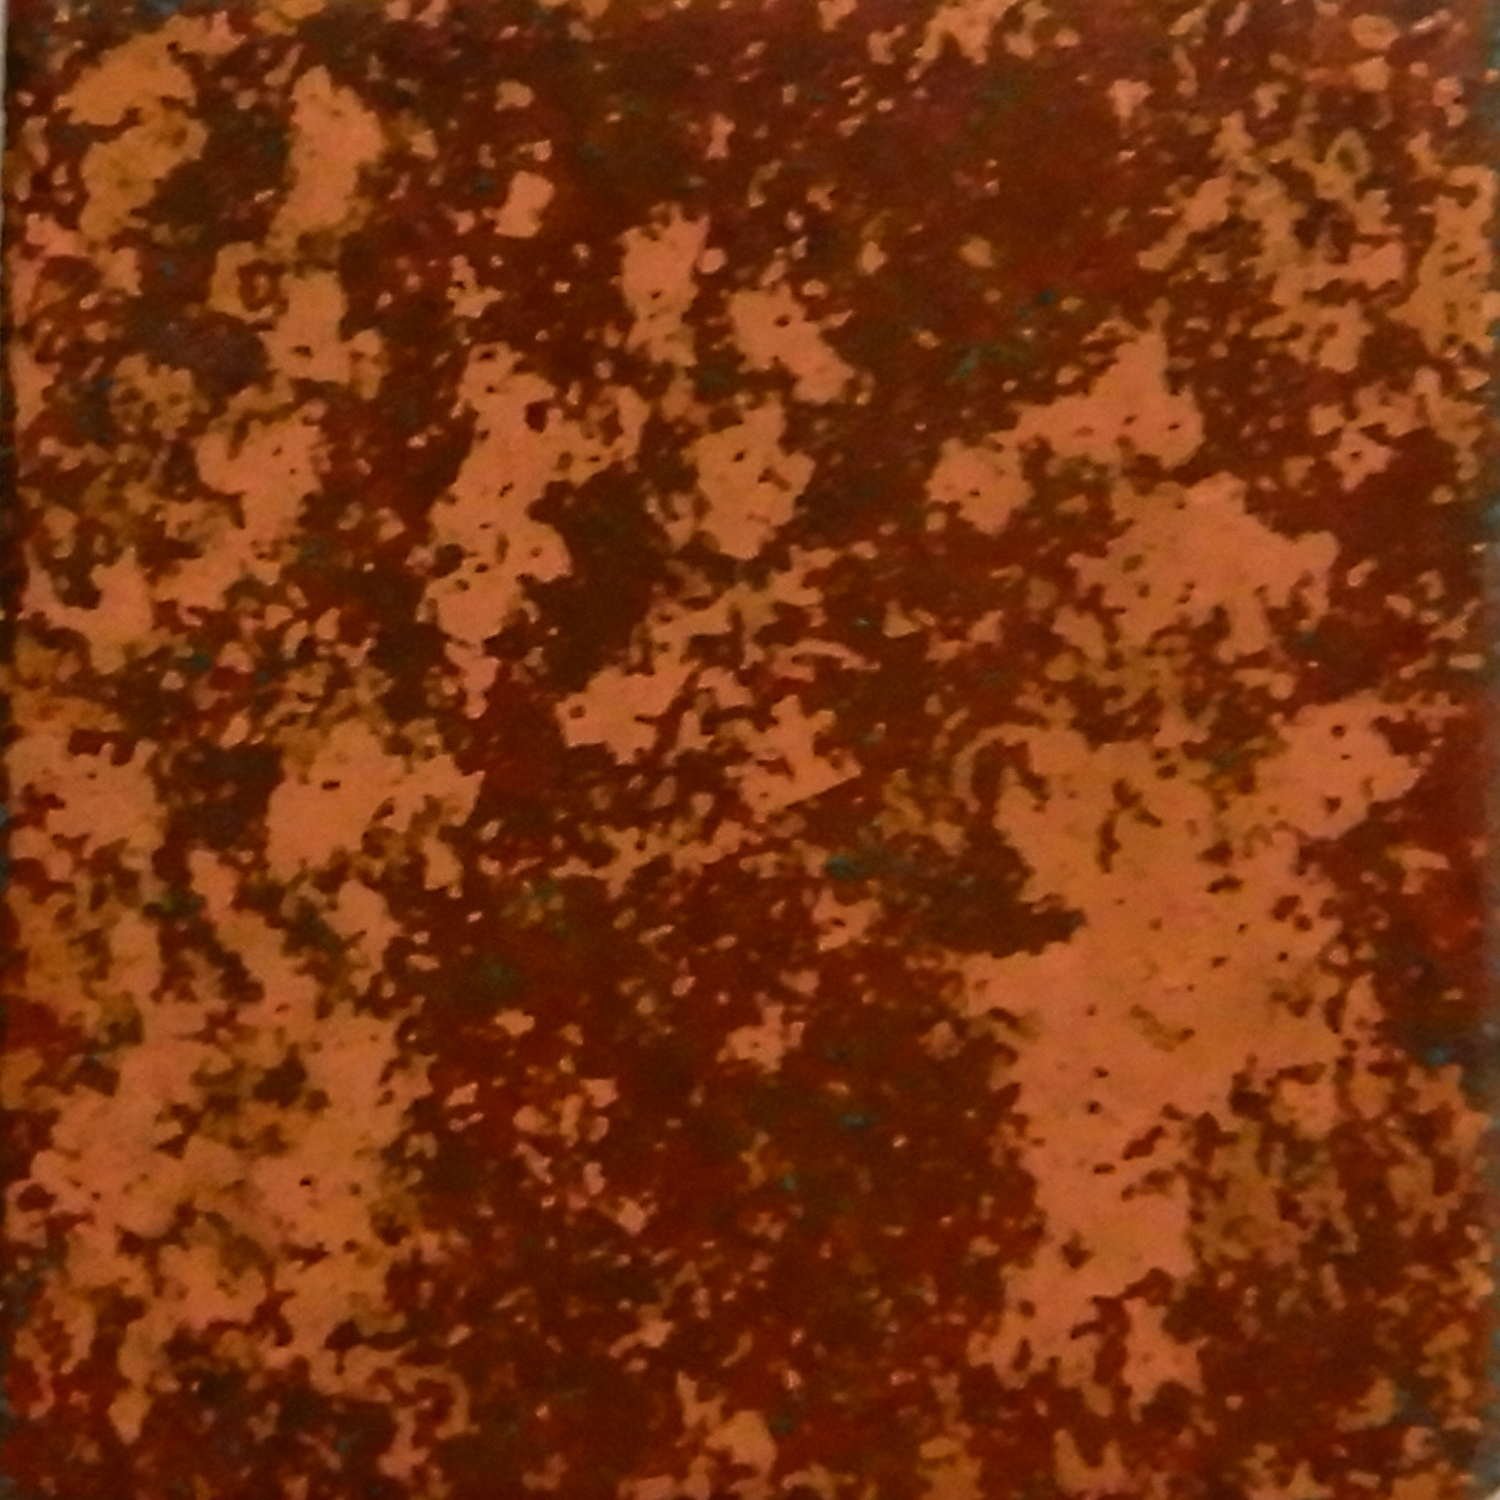 Annealed and sanded by sandpaper. Buried in mixture of salt, bleach, and sawdust for seven days. Size: 1 x 1 in